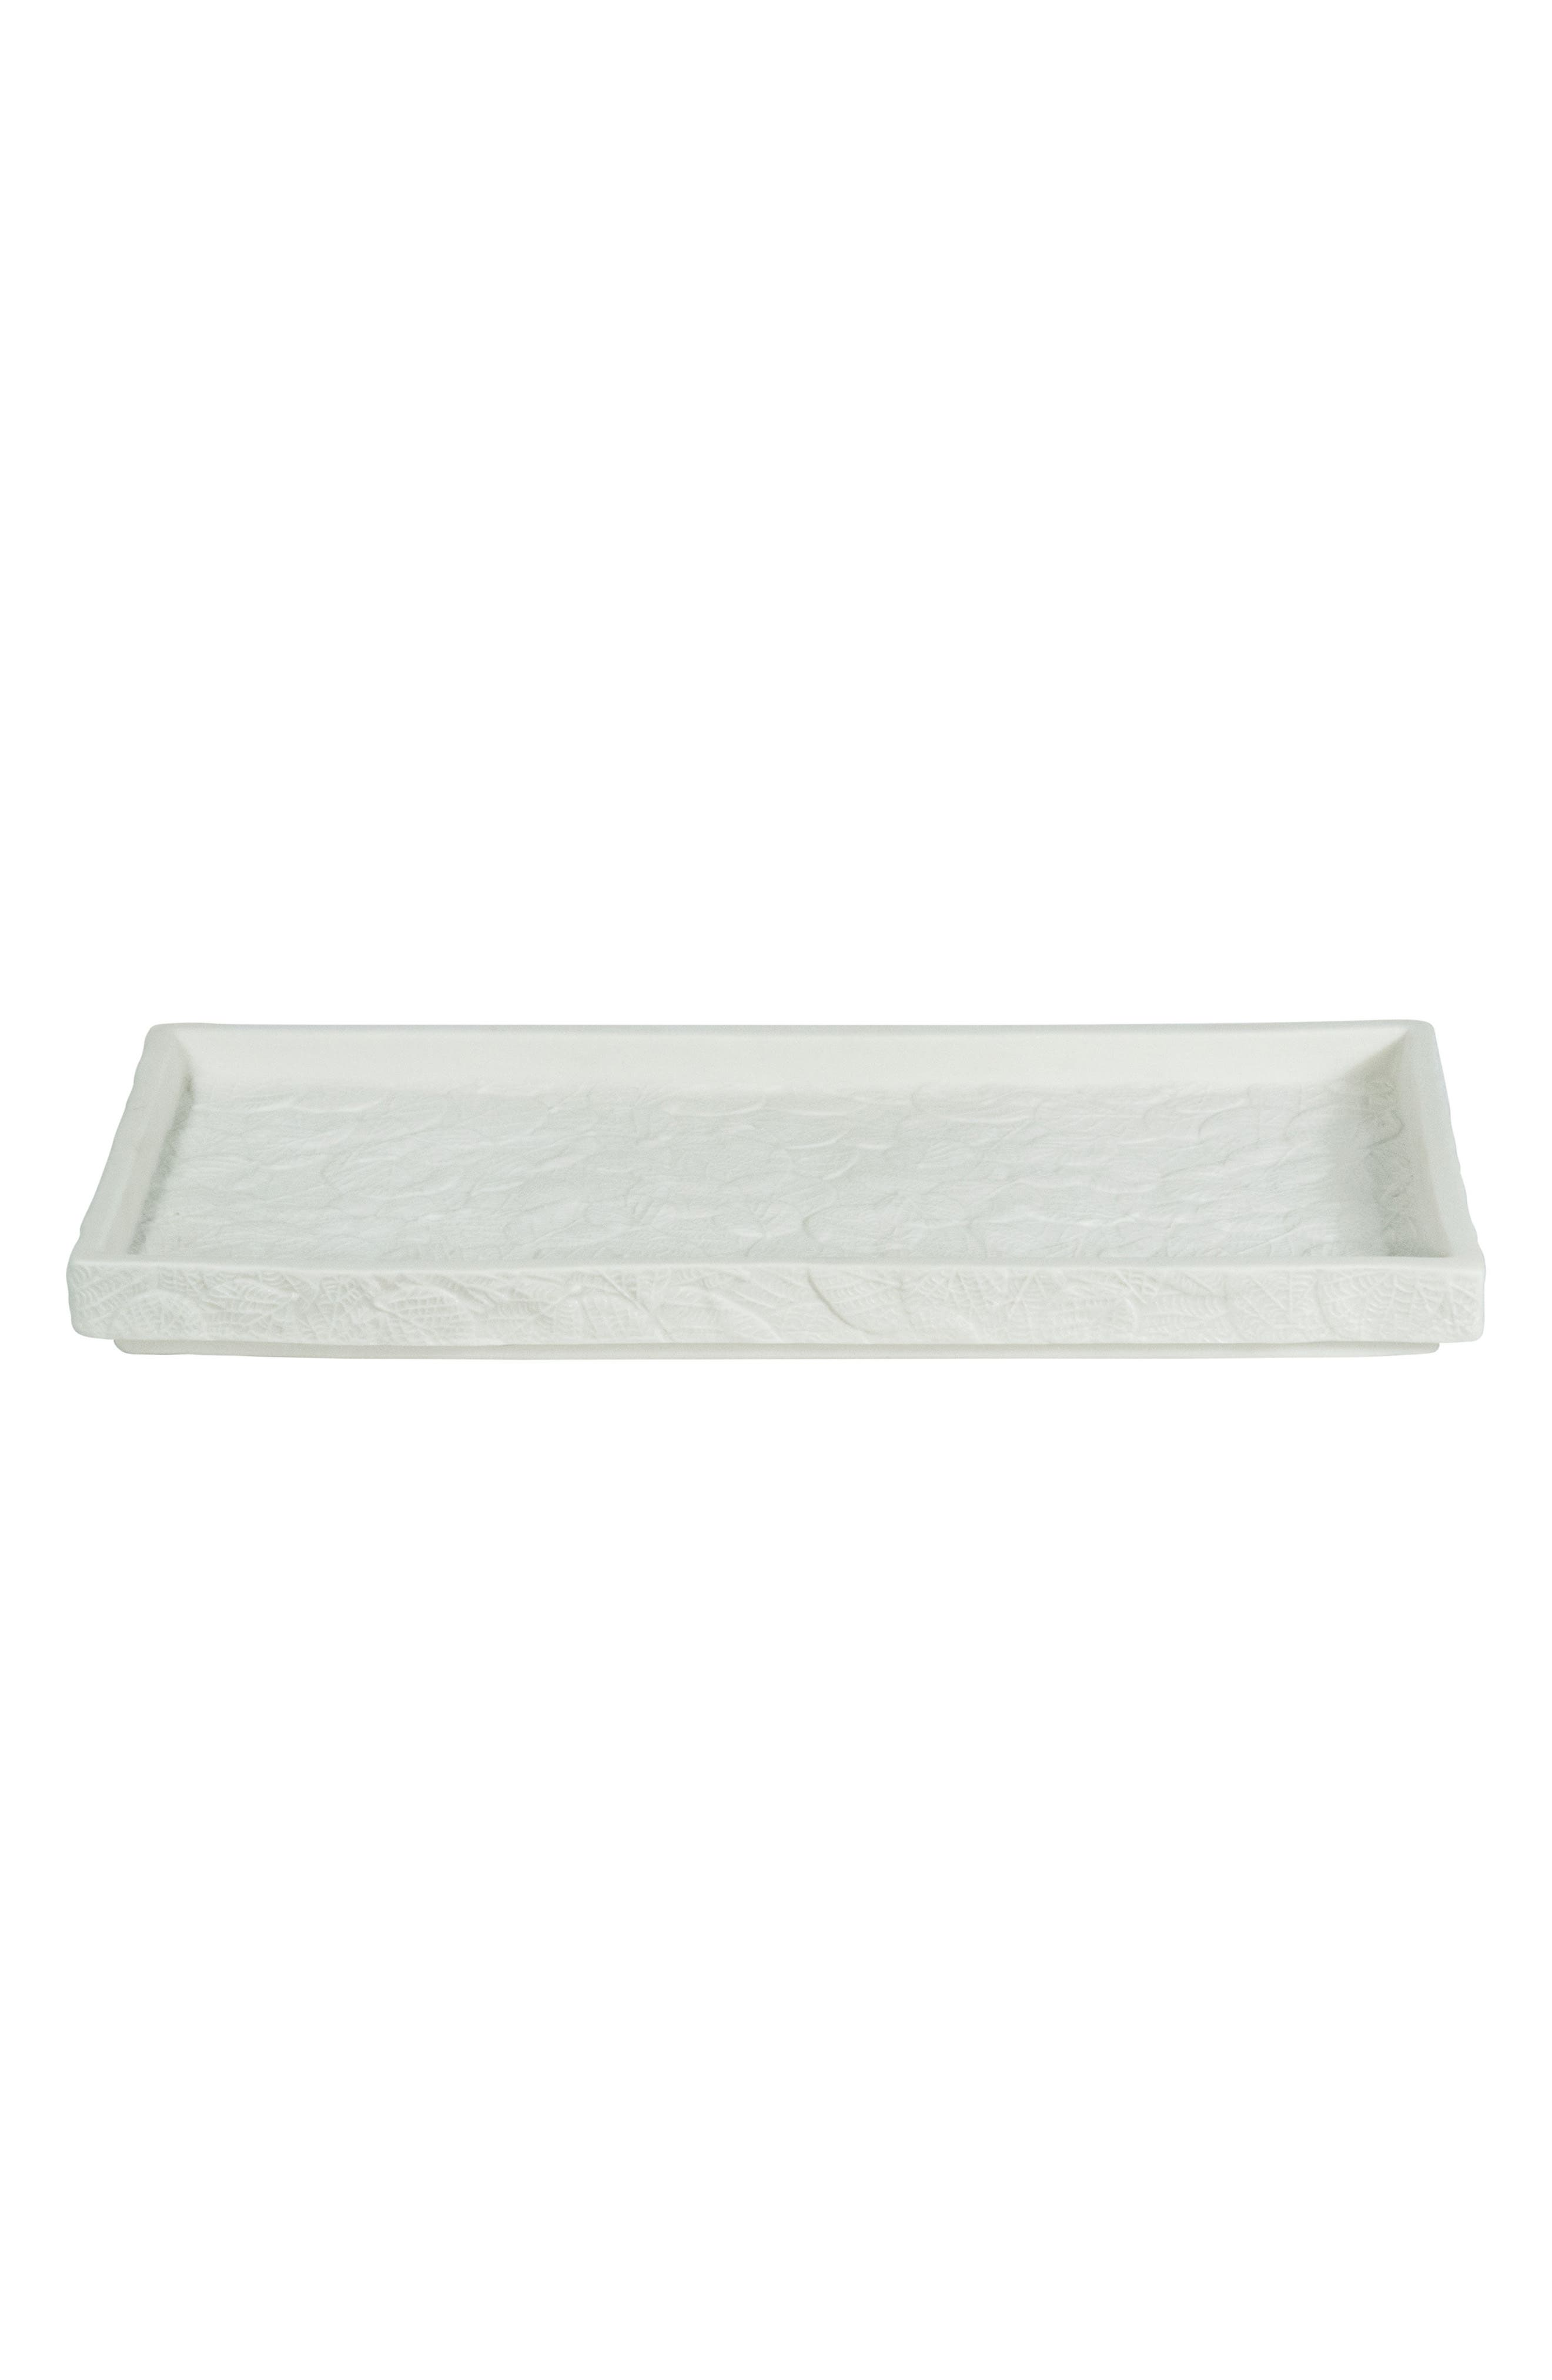 Botanical Leaf Porcelain Tray,                             Main thumbnail 1, color,                             WHITE